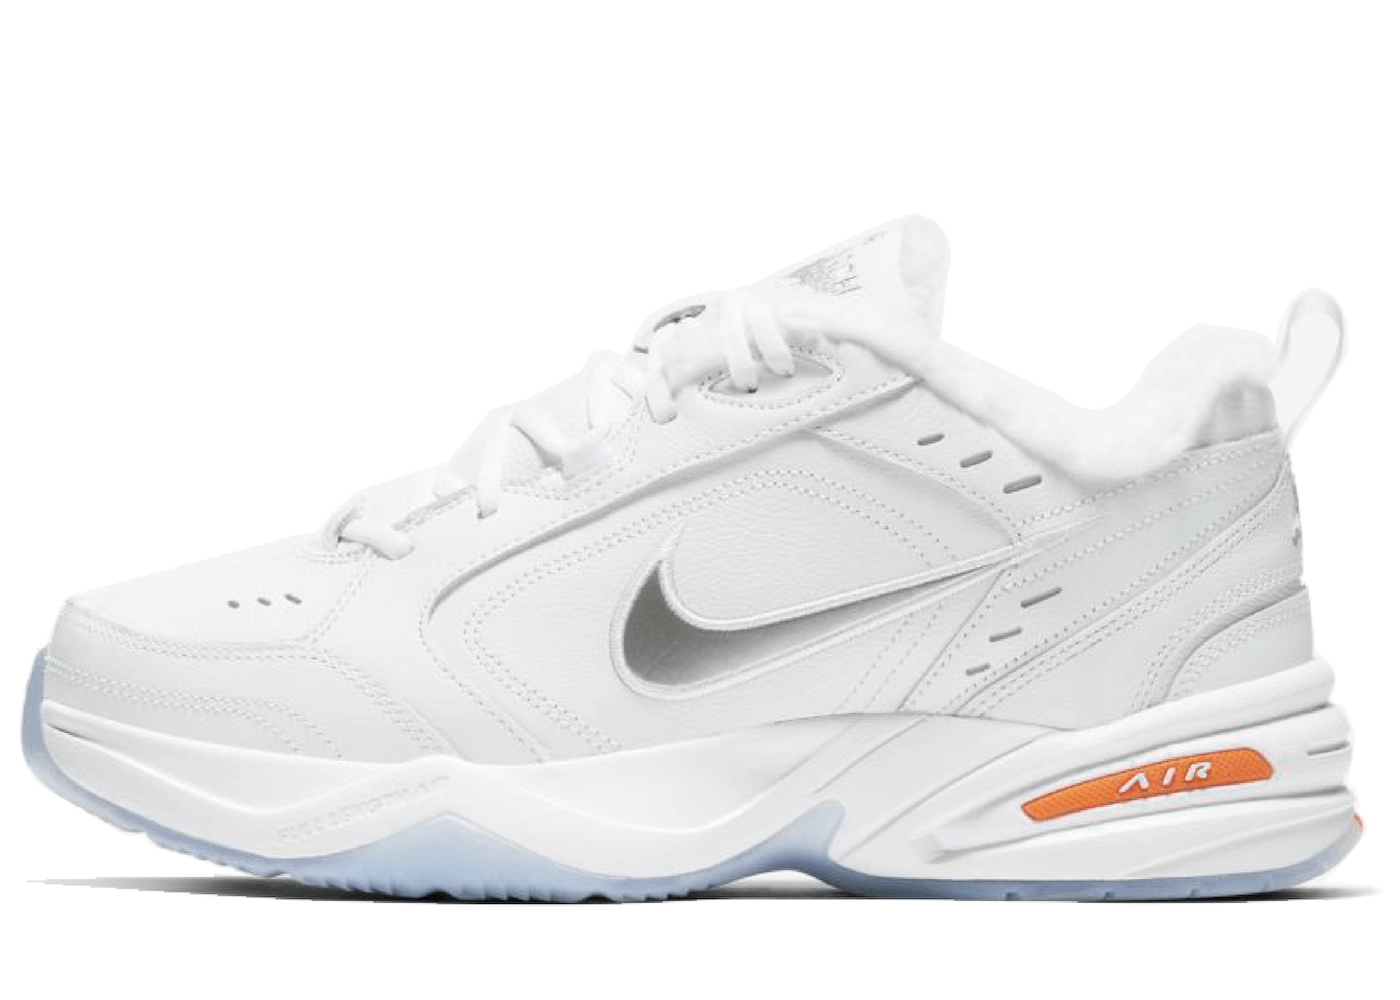 Nike Air Monarch 4 White Total Orange Metallic Silverの写真